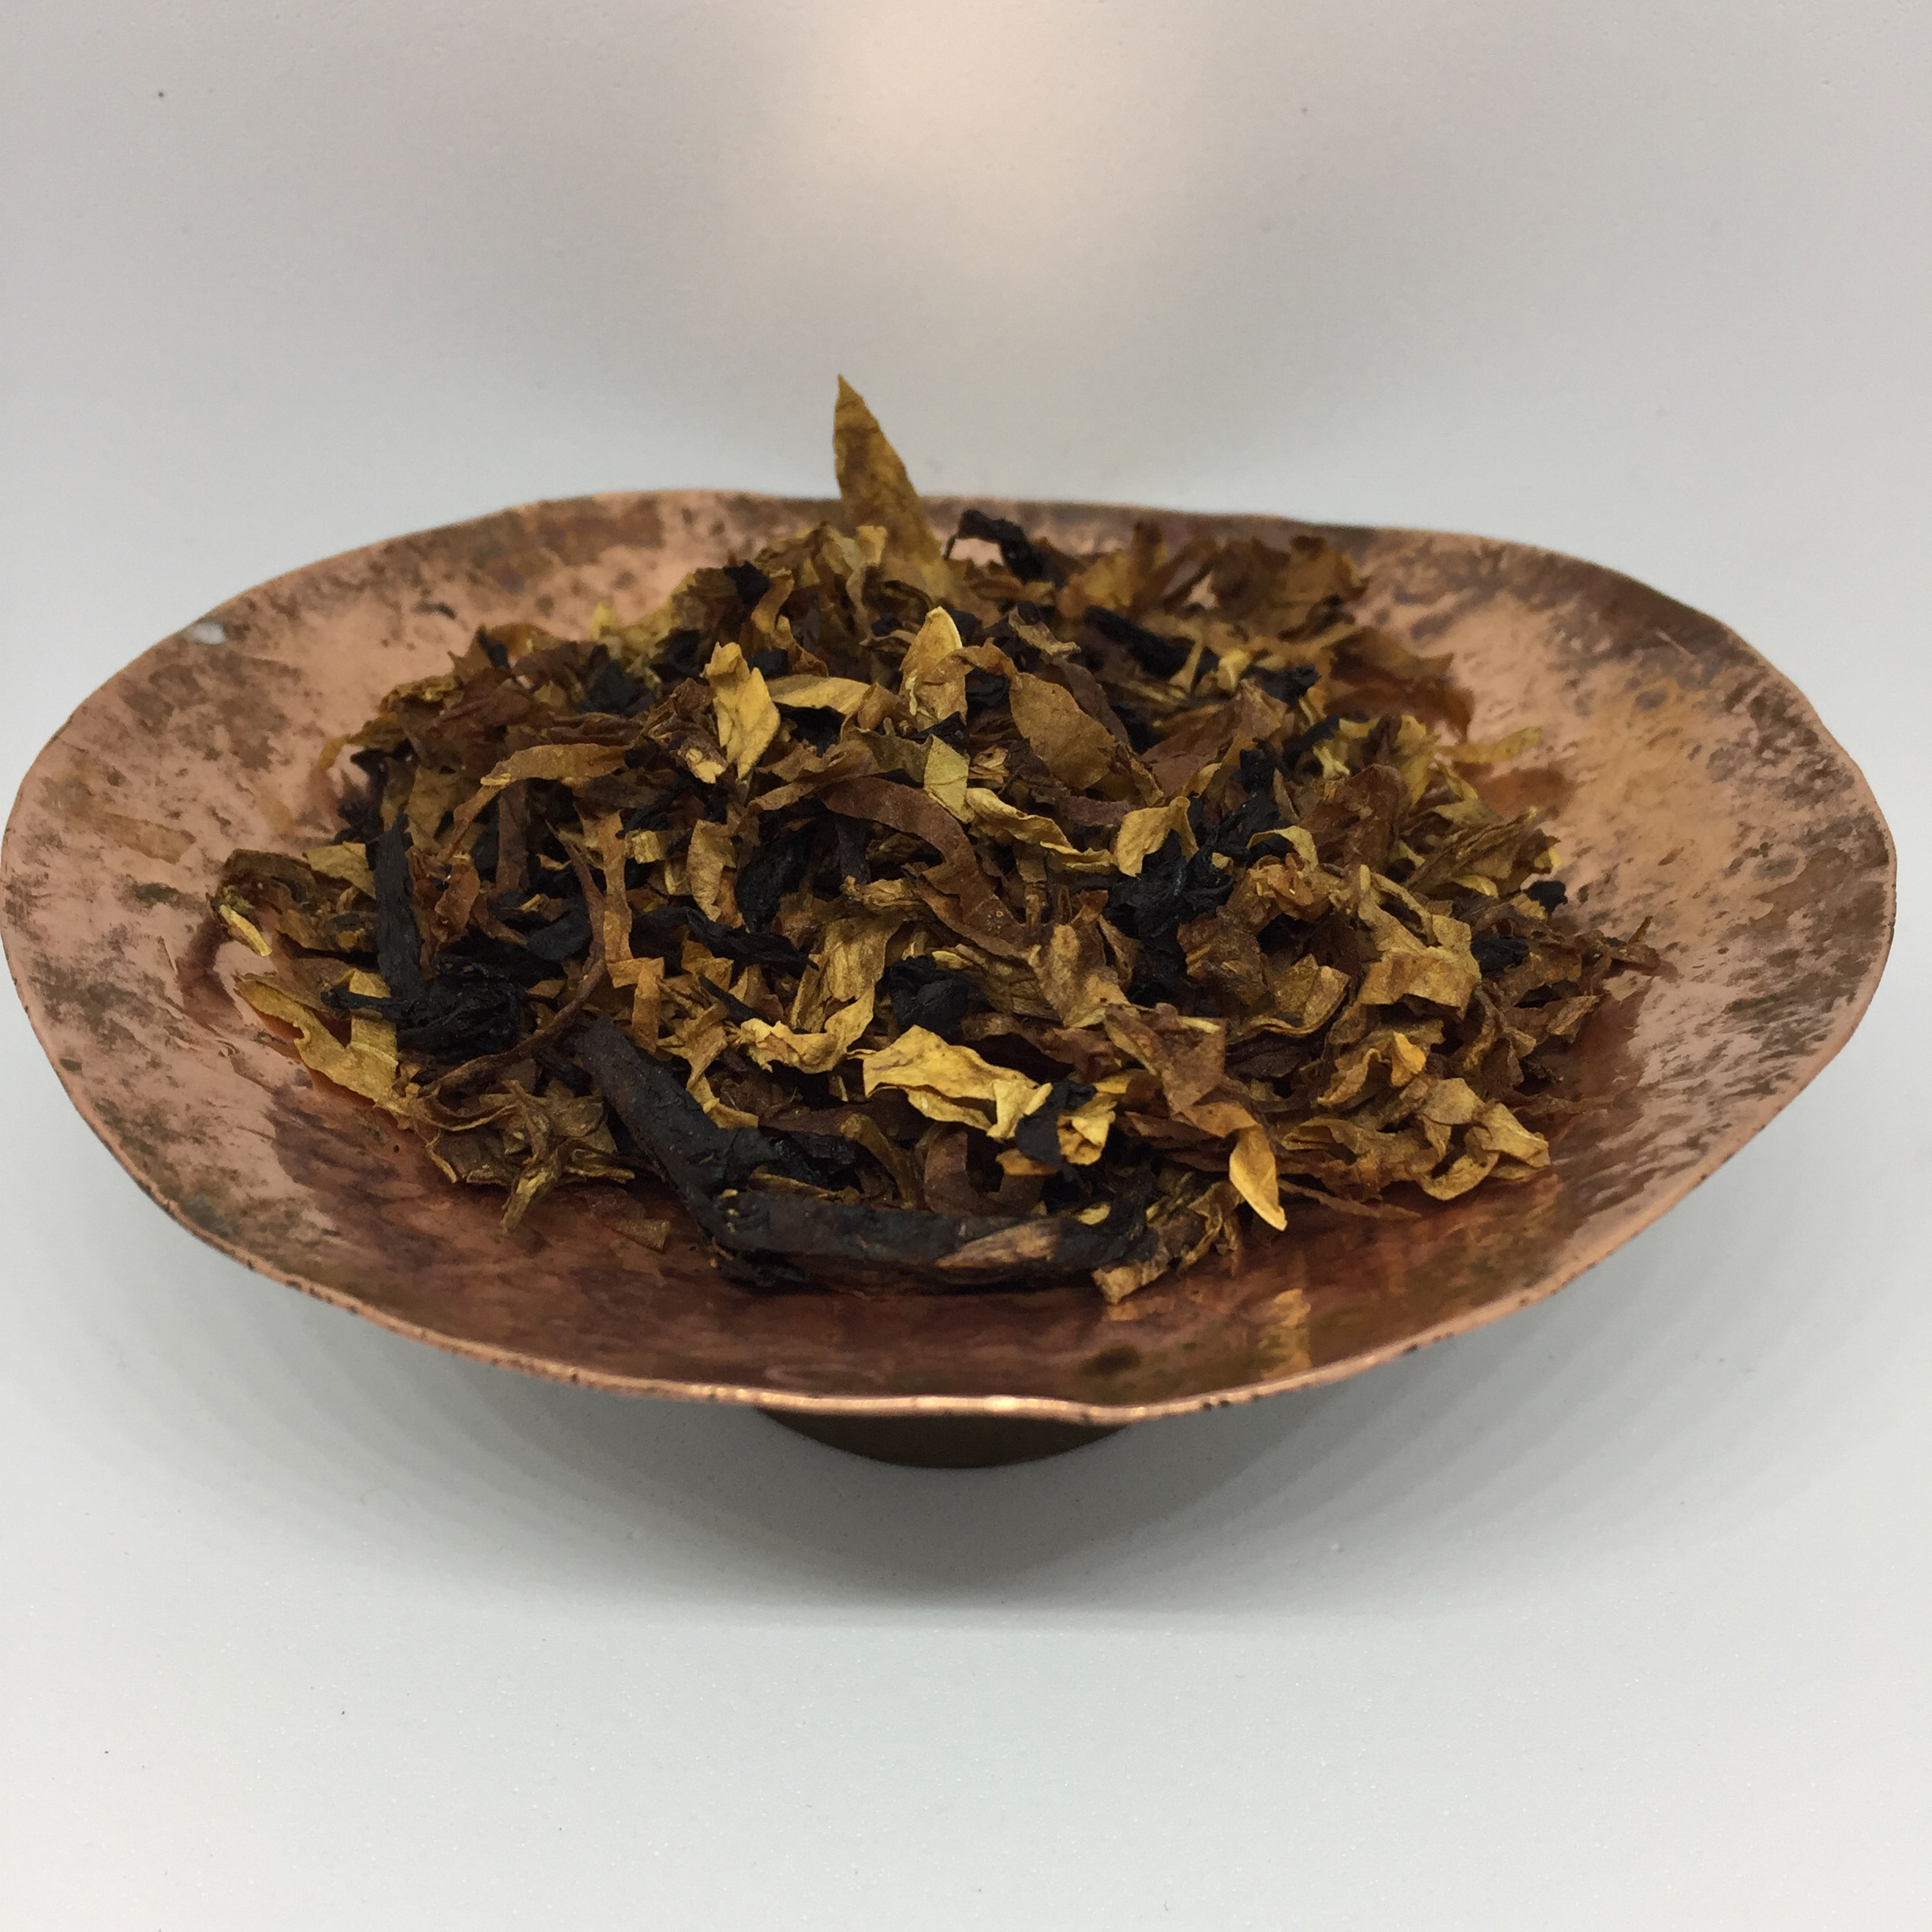 Marytavy Nougat - Loose Pipe Tobacco